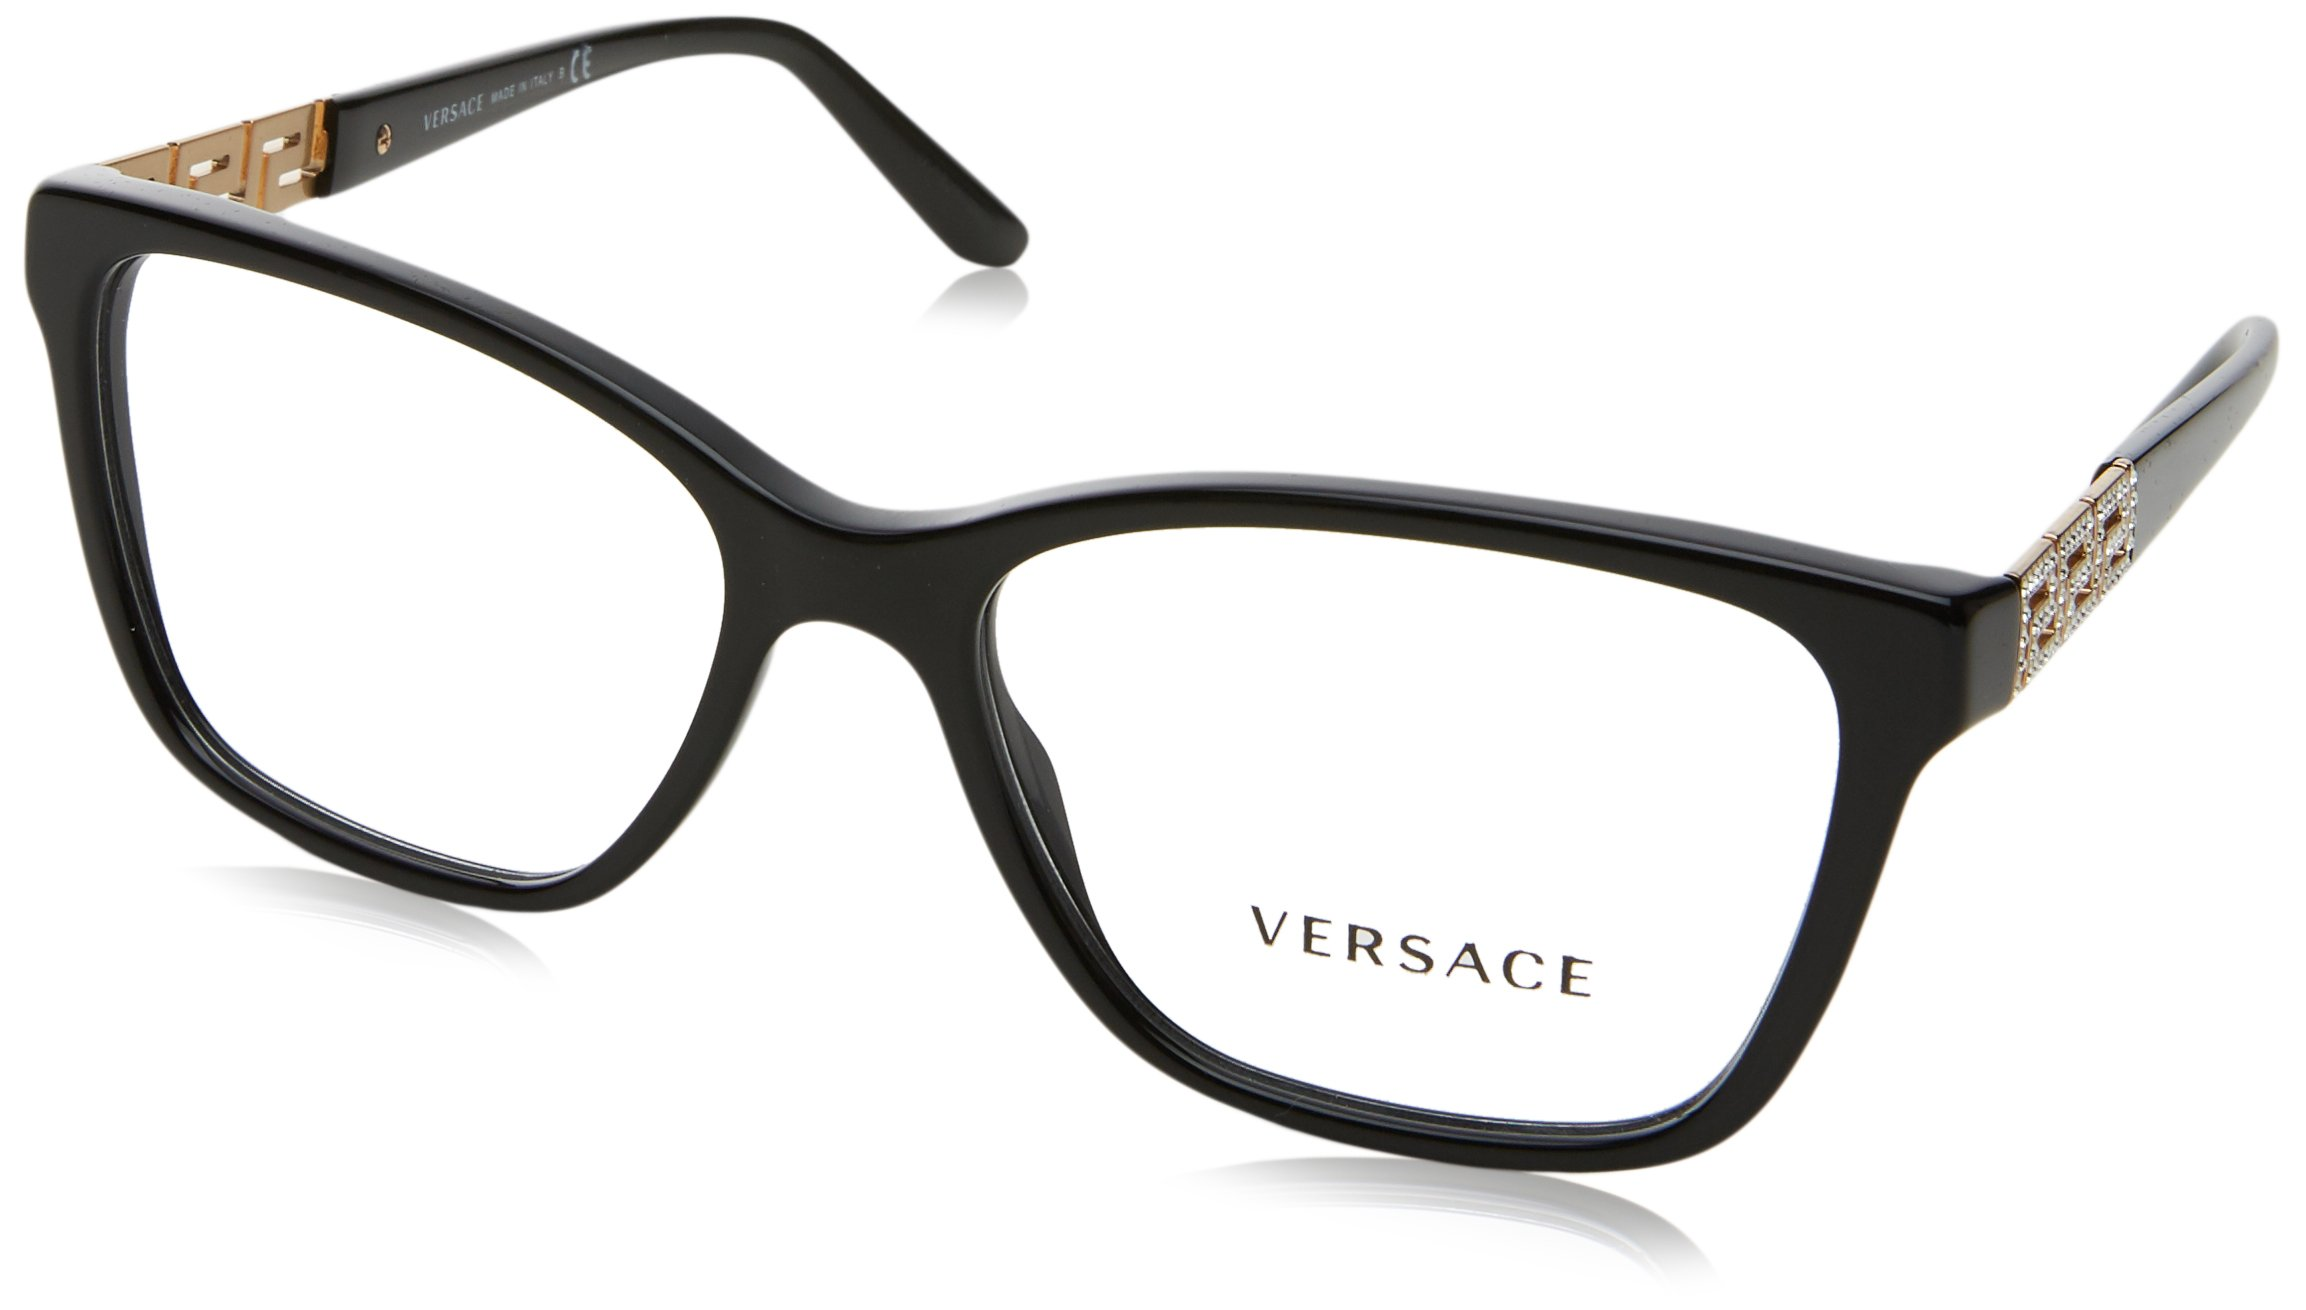 Versace VE3192B Eyeglass Frames GB1-54 - Black VE3192B-GB1-54 by Versace